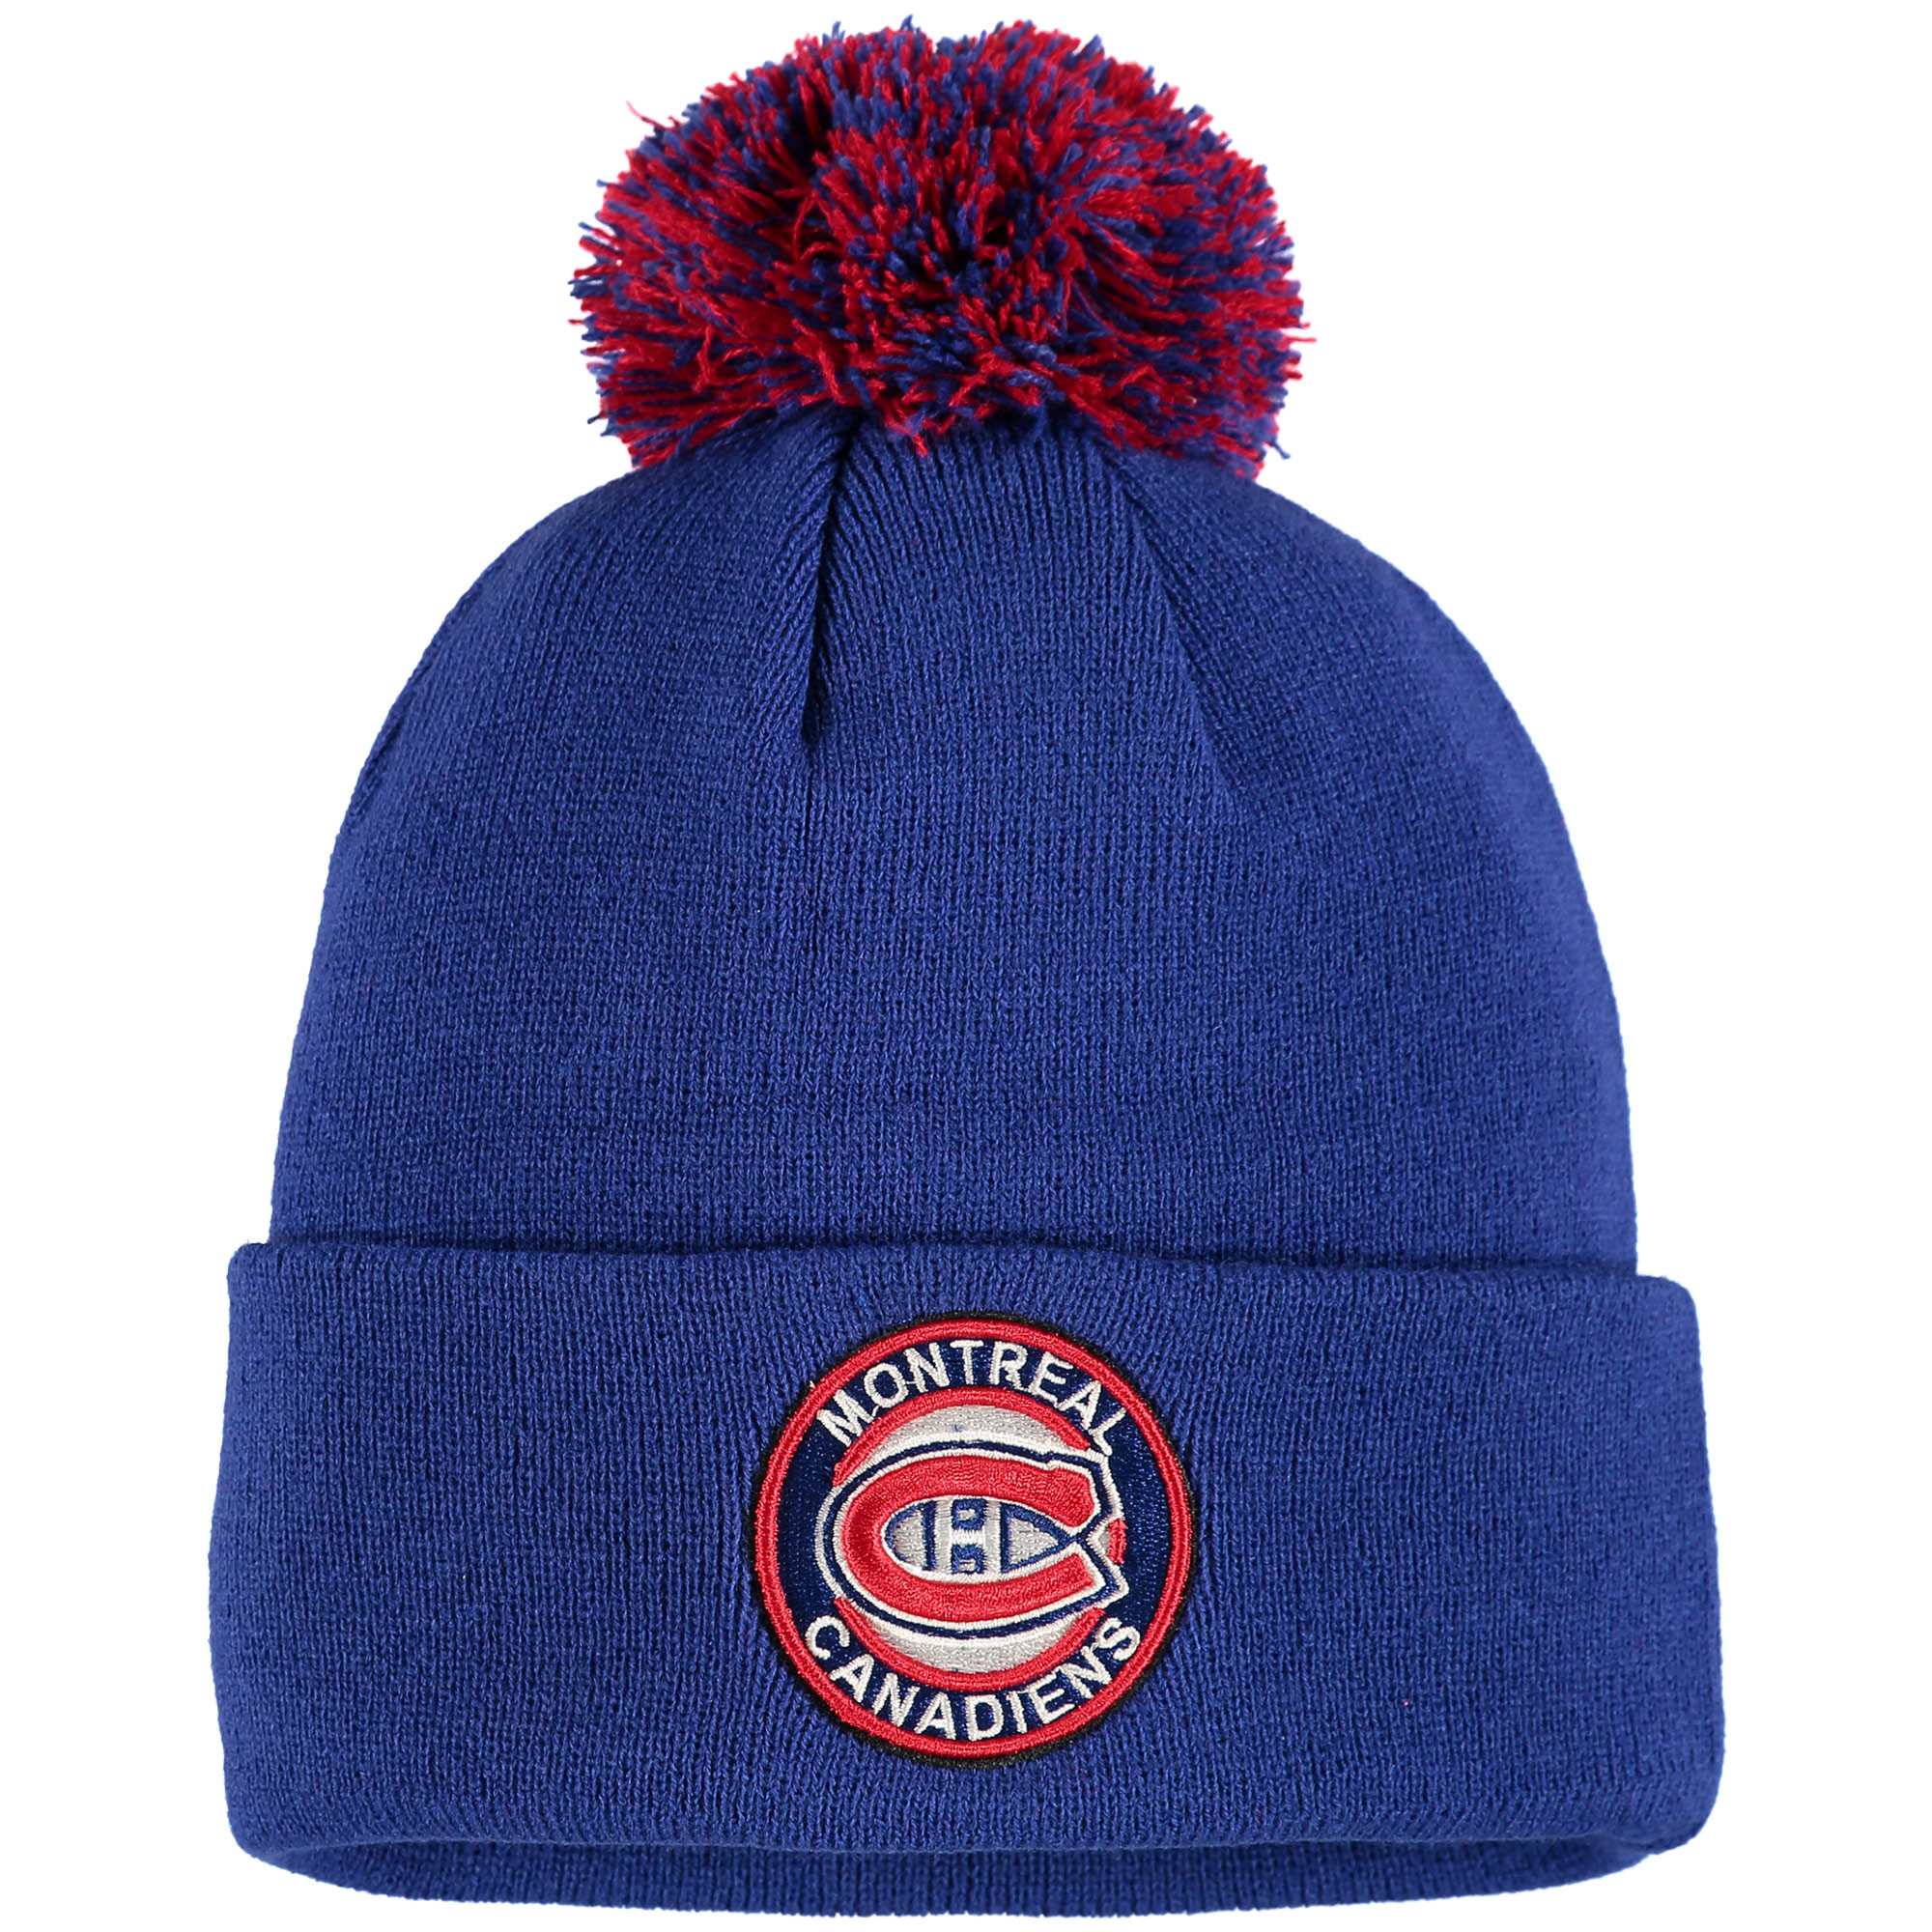 Montreal Canadiens Zephyr Seal Cuffed Knit Hat - Navy - OSFA